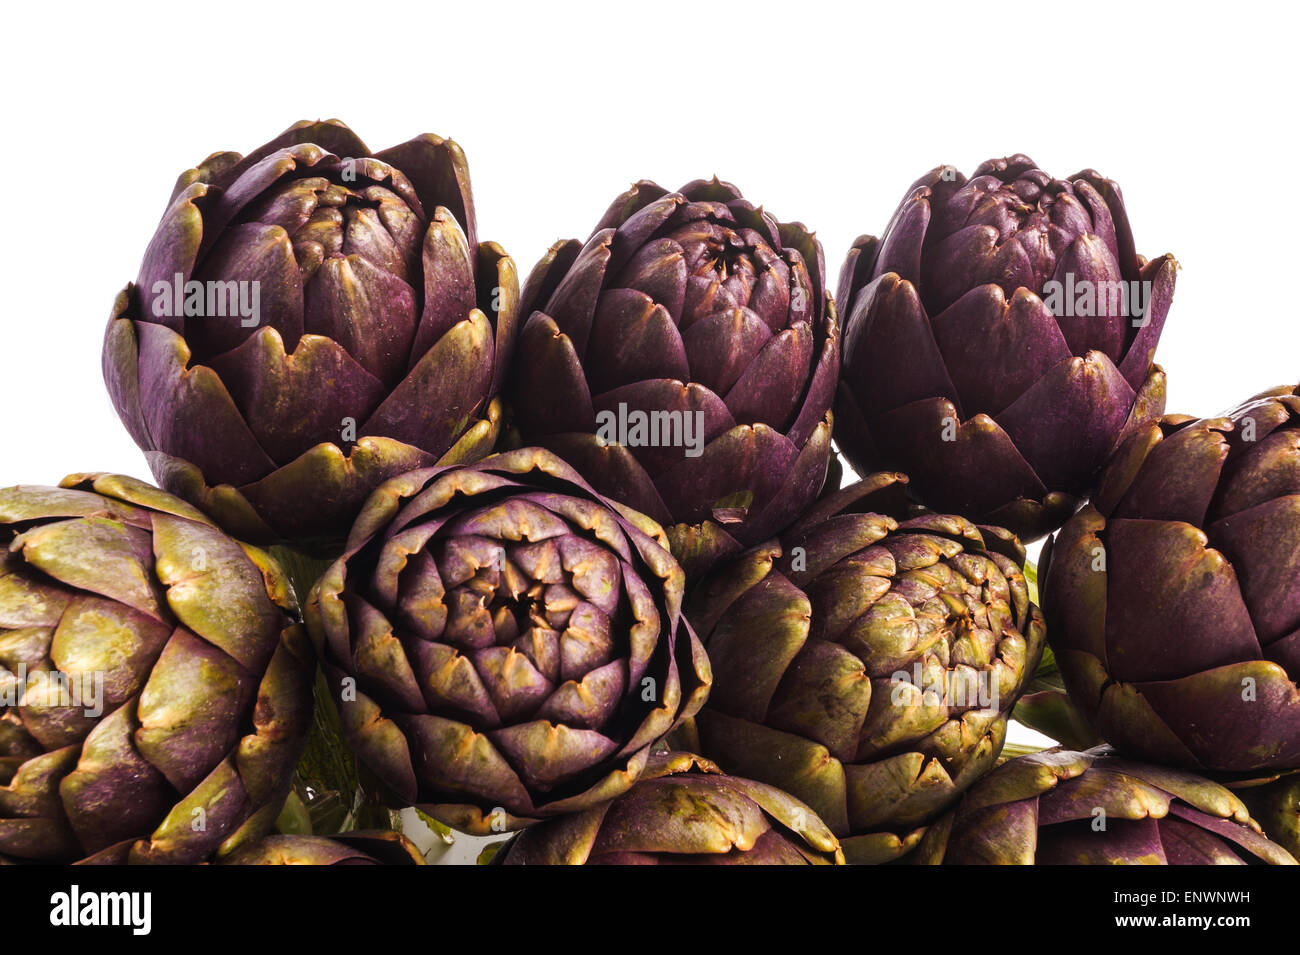 Pile of Purple artichokes ready for cooking, isolated - Stock Image